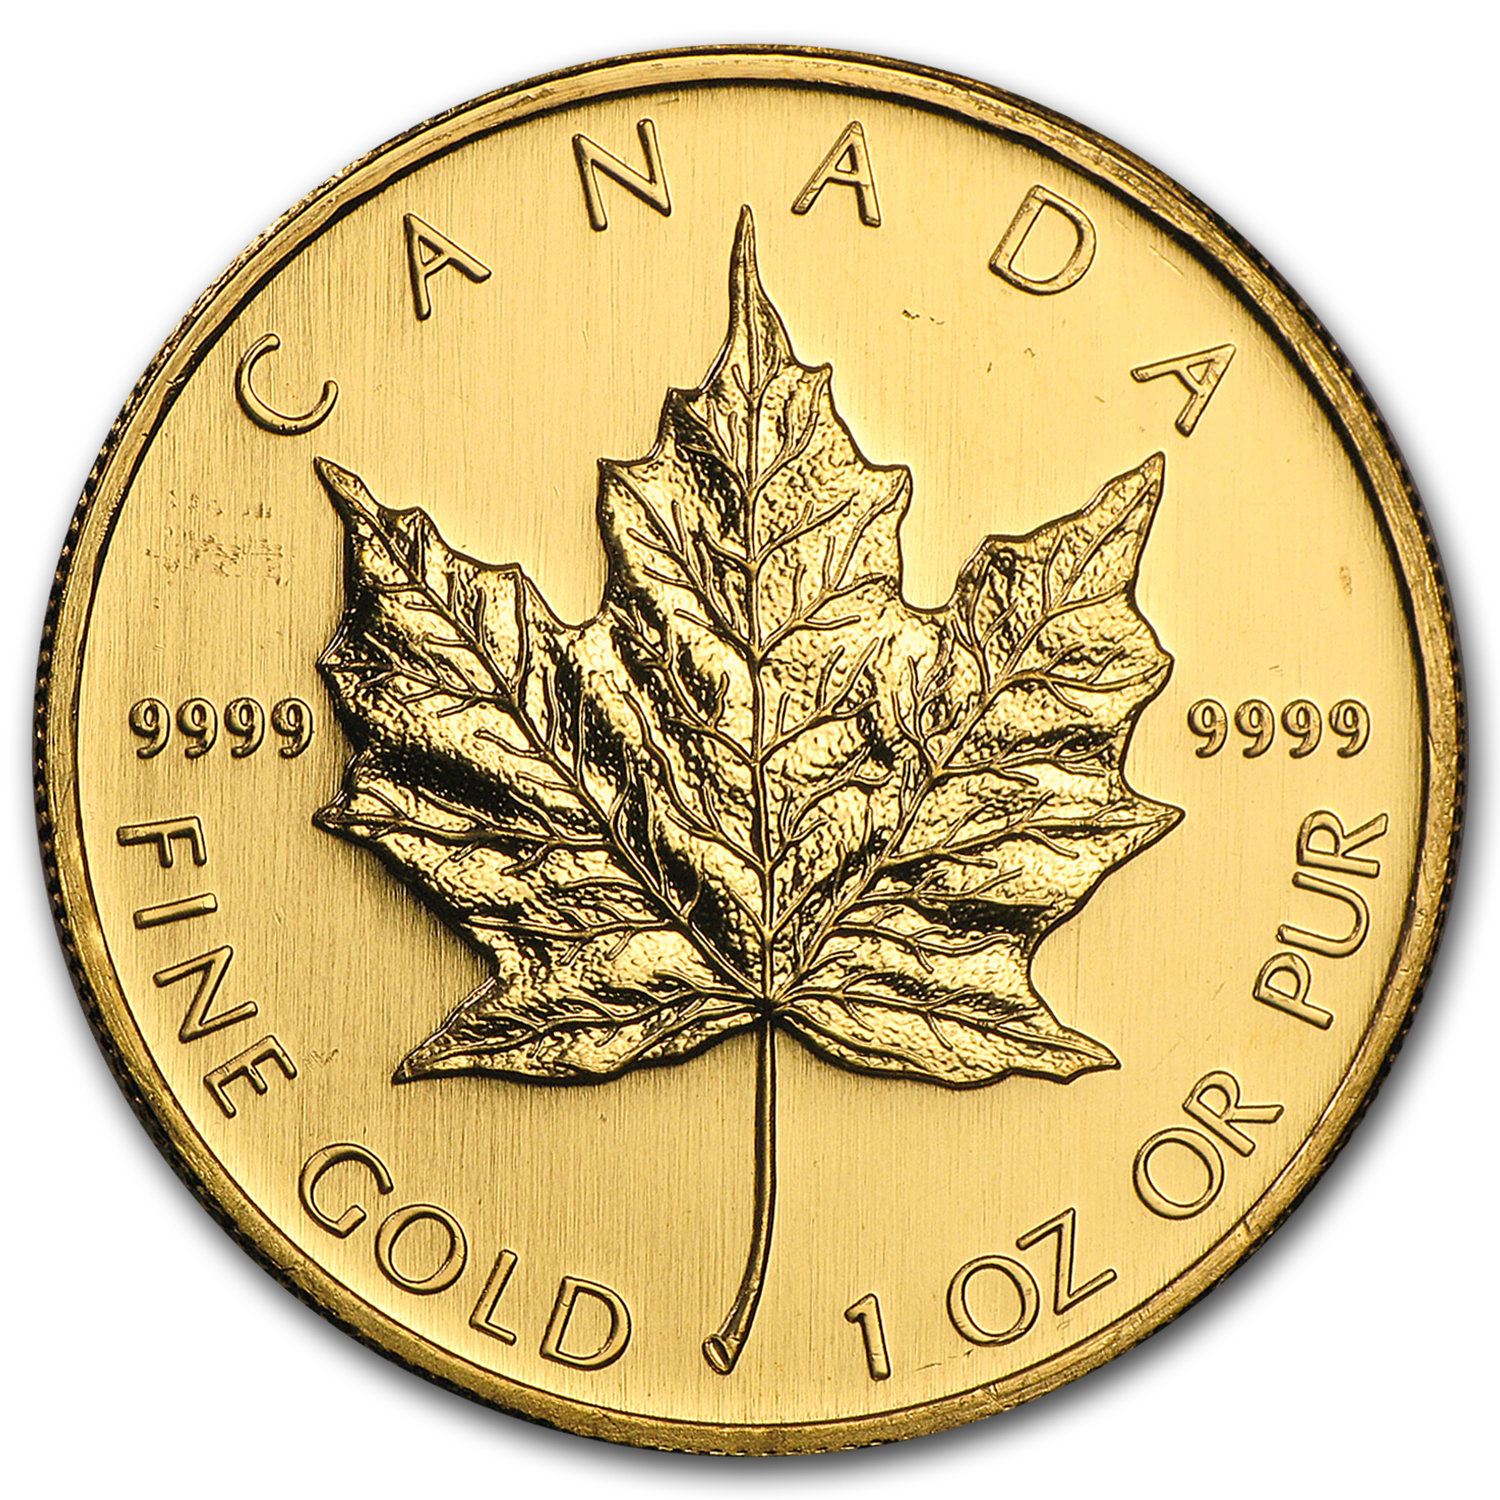 2008 1 oz Gold Canadian Maple Leaf BU